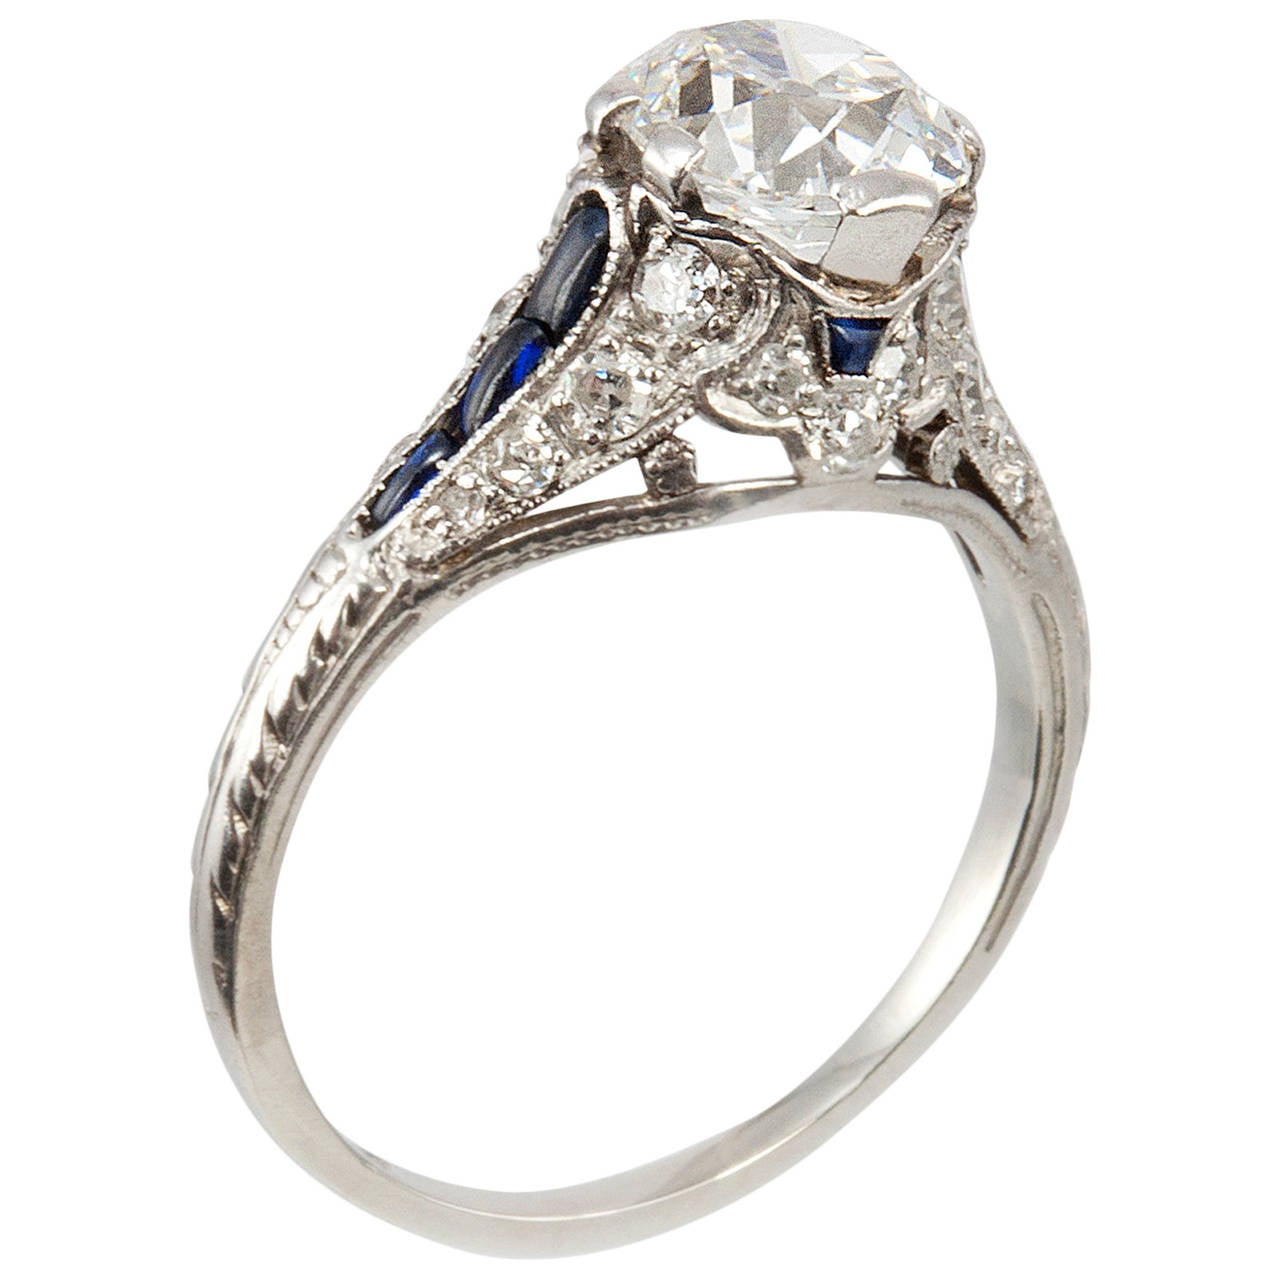 157 Carat Cushion Cut Diamond Sapphire Platinum Antique Engagement Ring 1